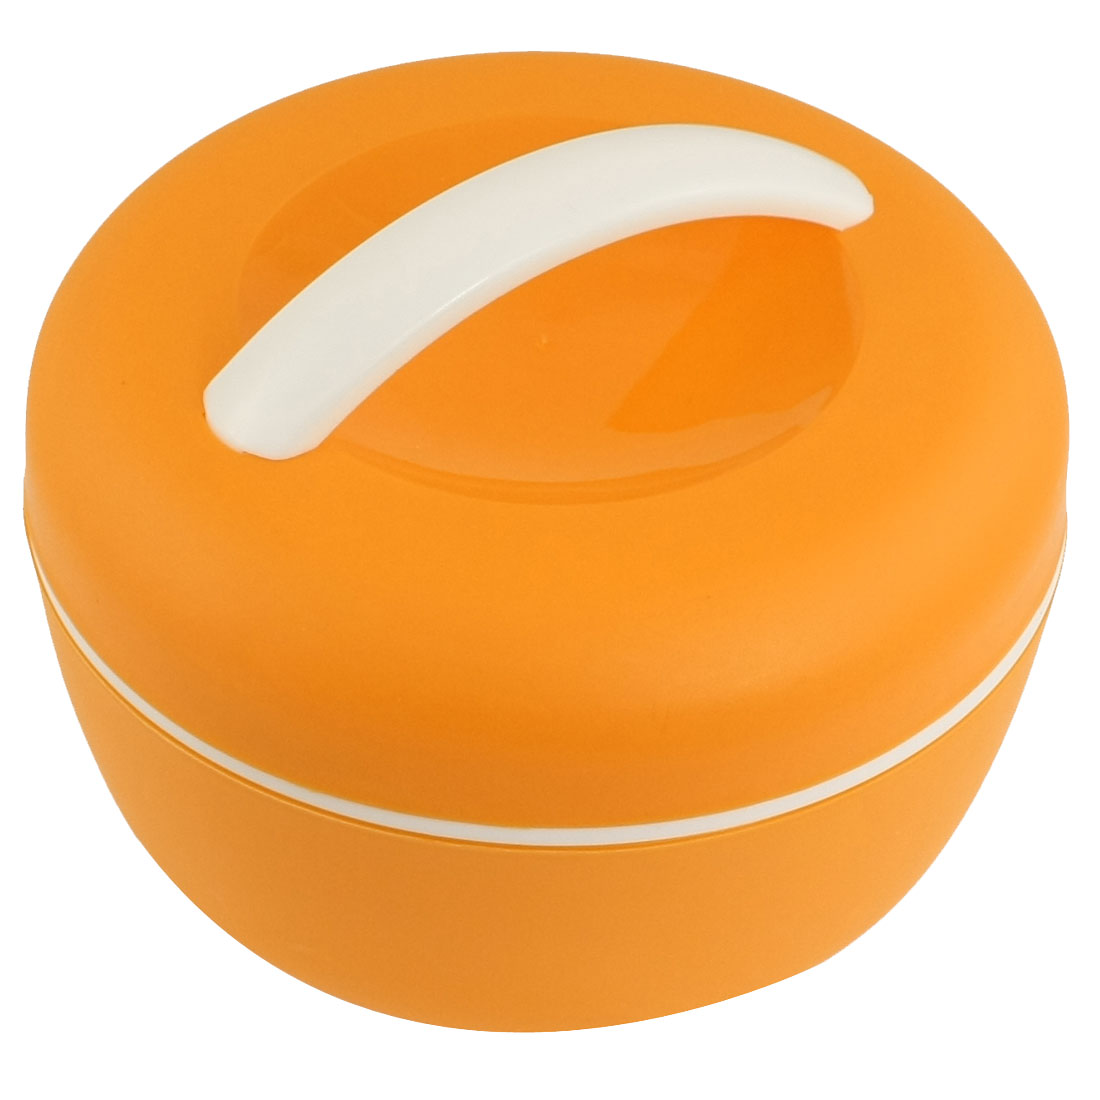 Apple Shaped White Orange Plastic Food Dish Container Lunch Box w Spoon